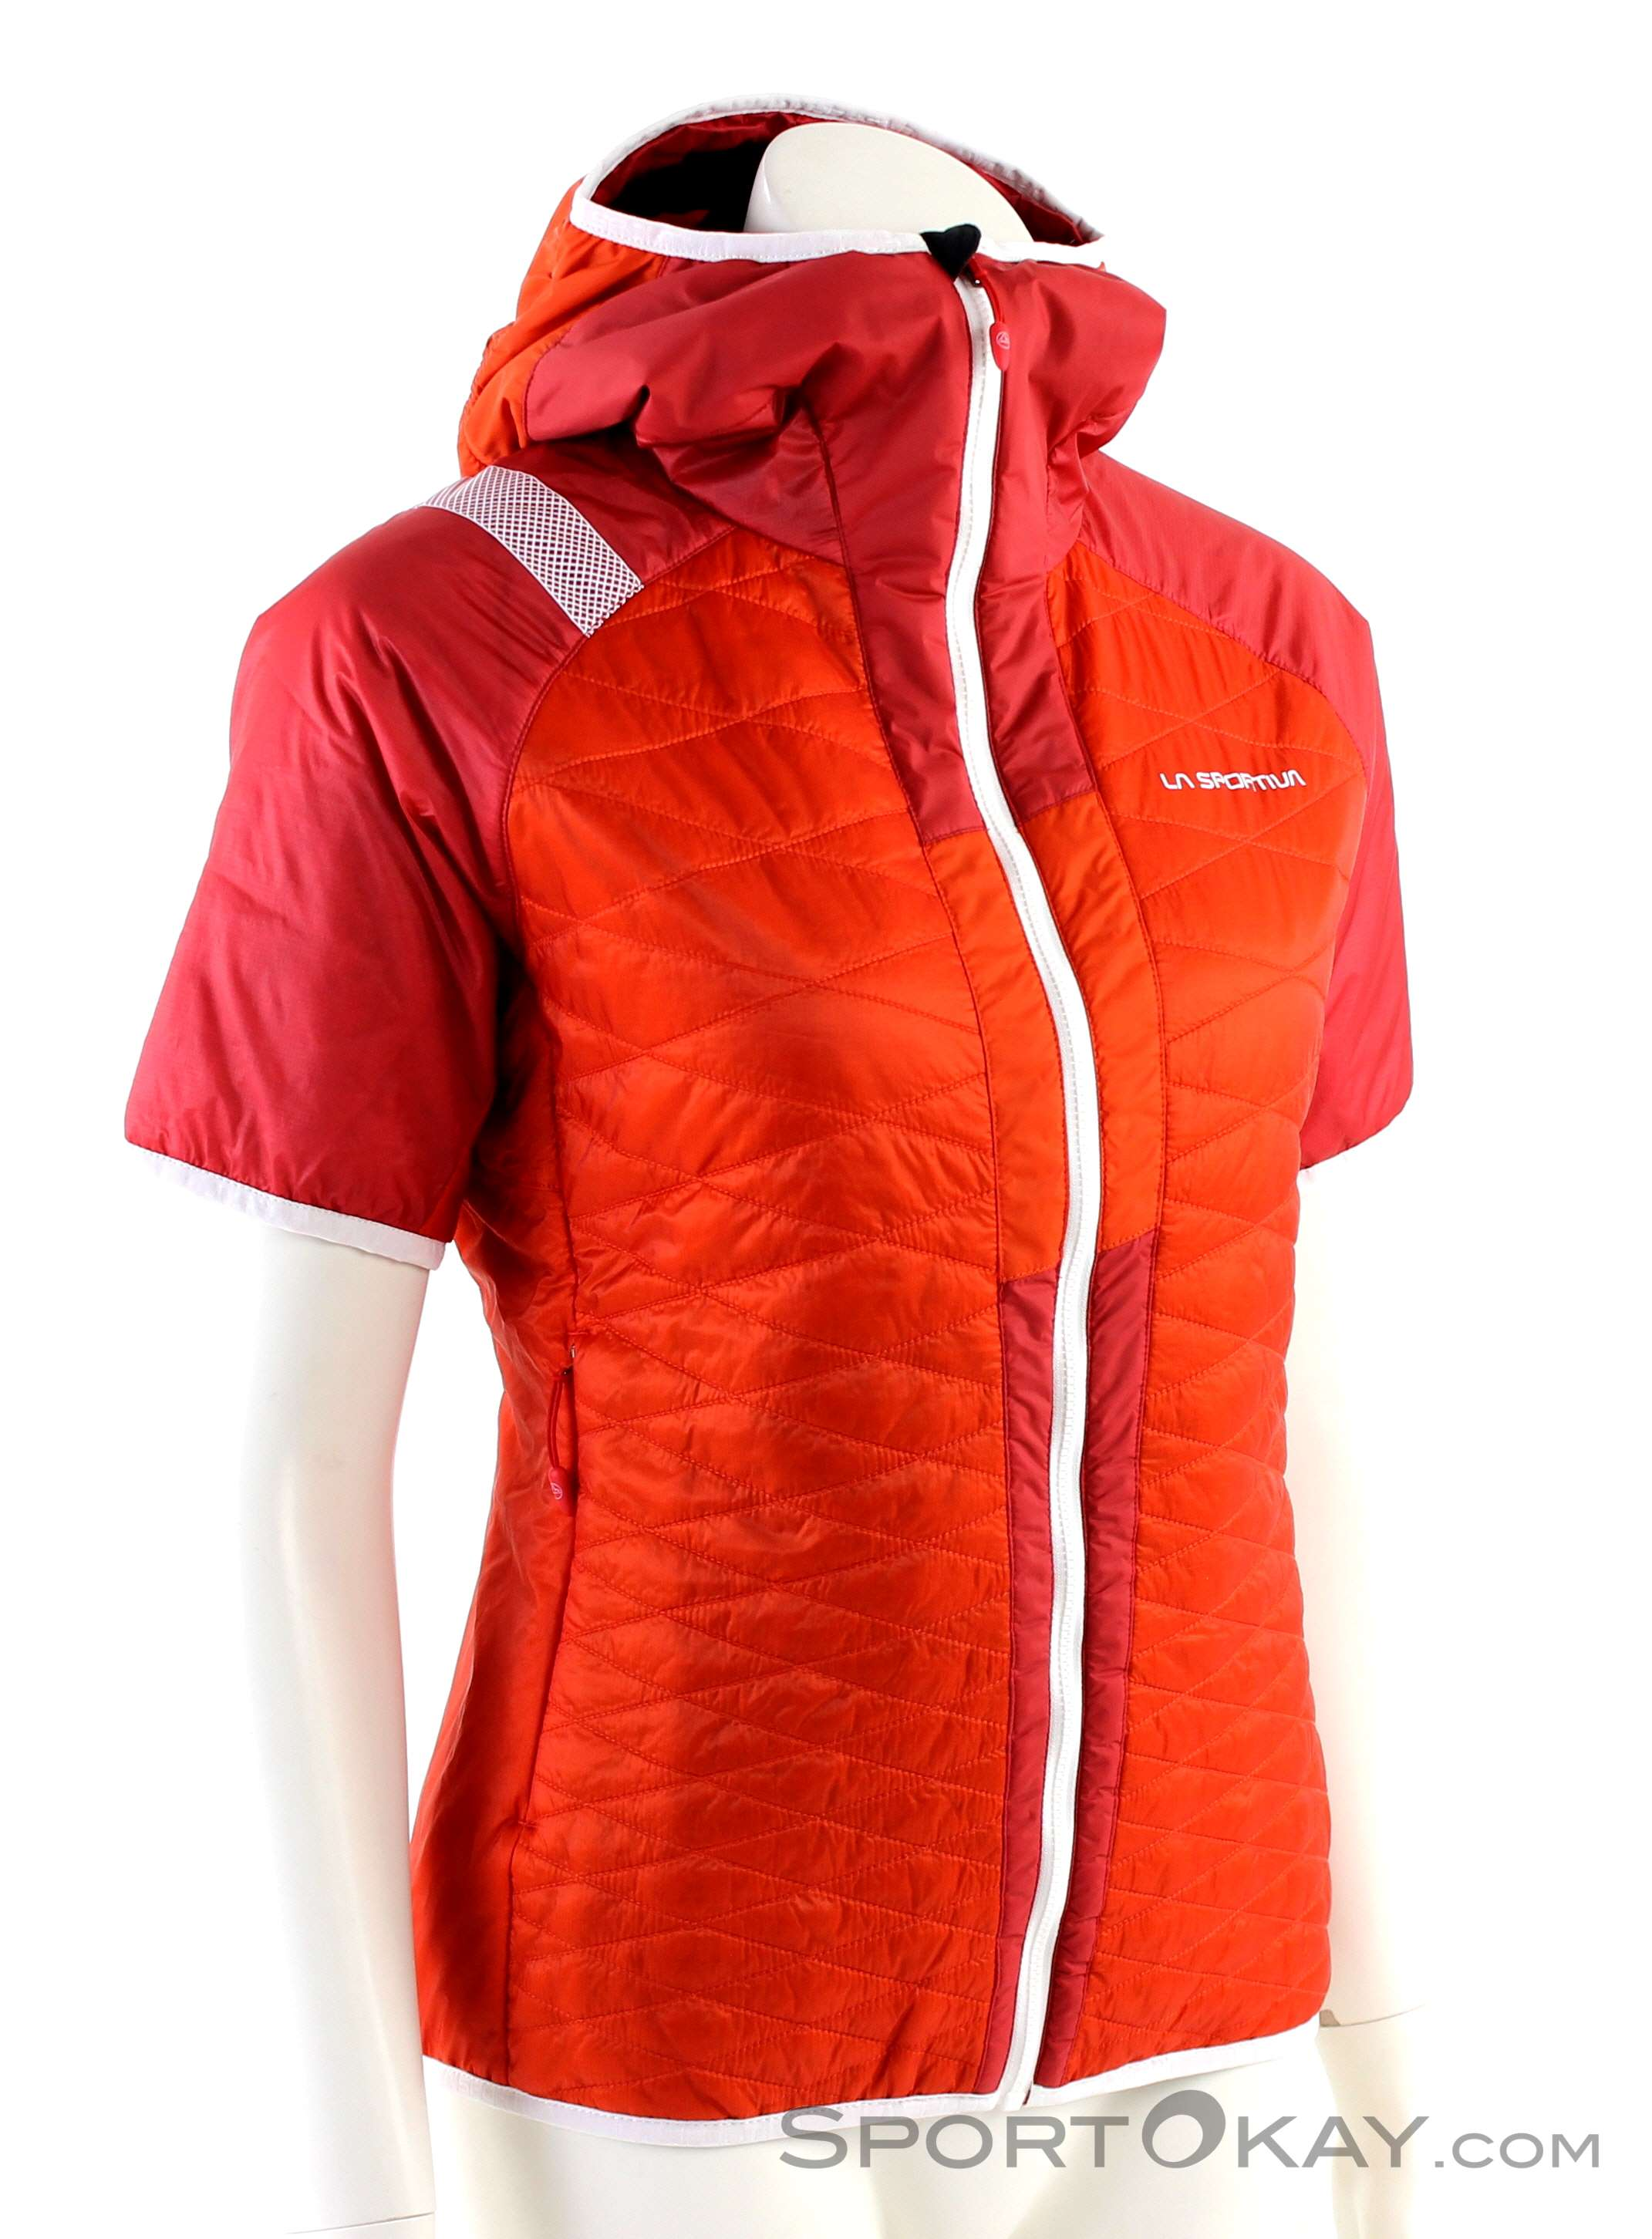 Outdoor Short Sleeve Womens Jacket La Sportiva Firefly f76gYyb